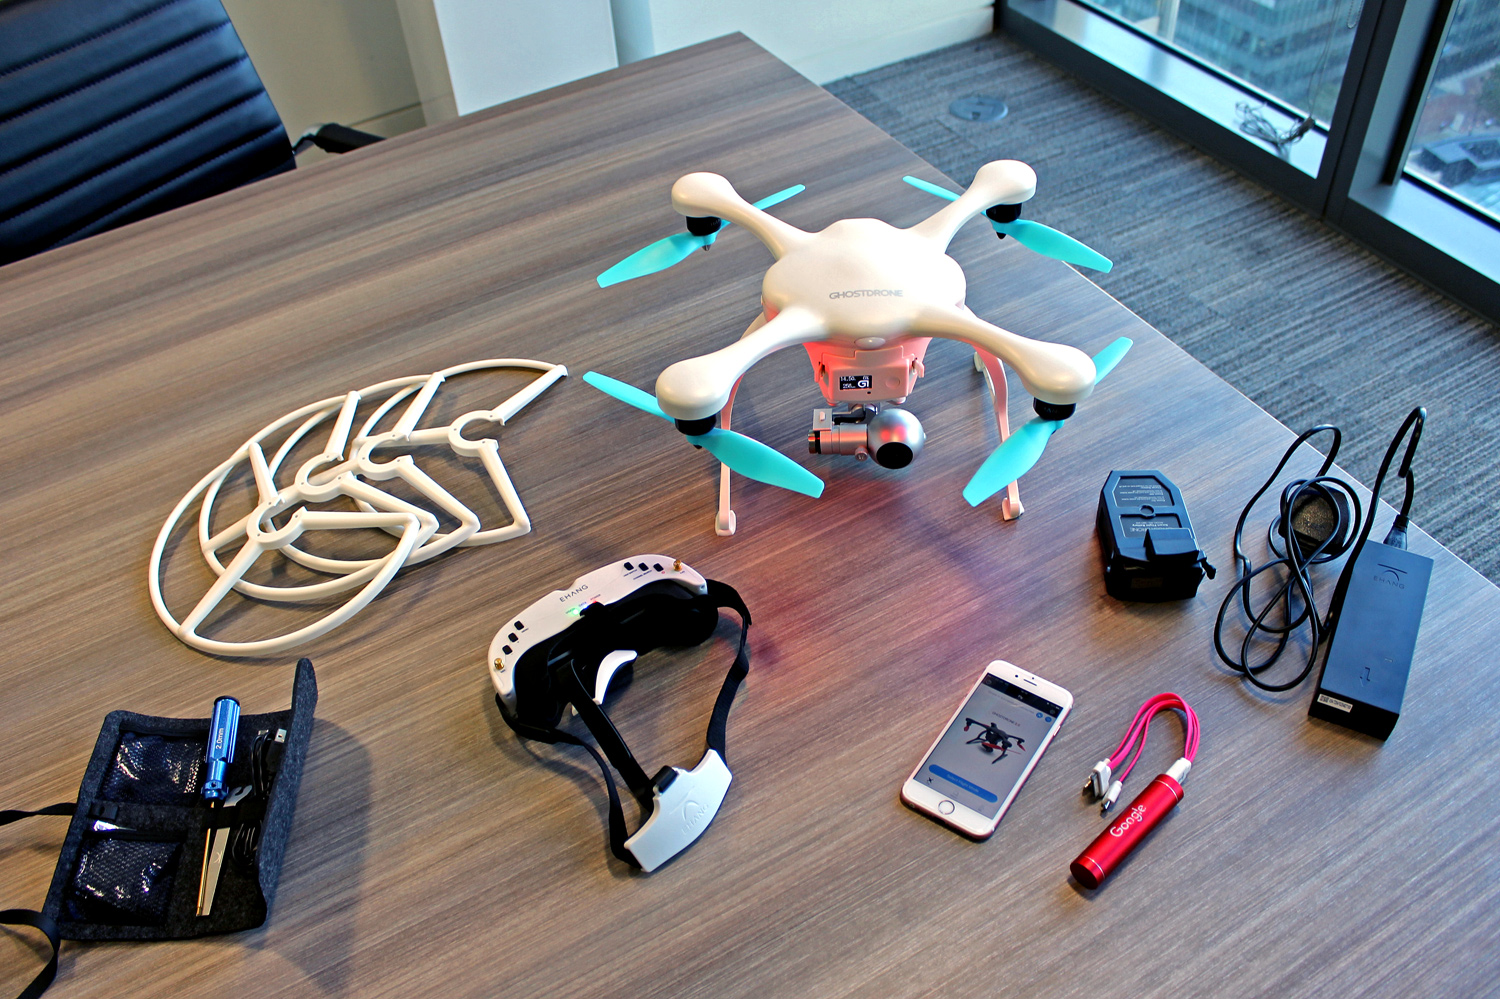 Ehang Ghostdrone 2.0 VR and its accessories